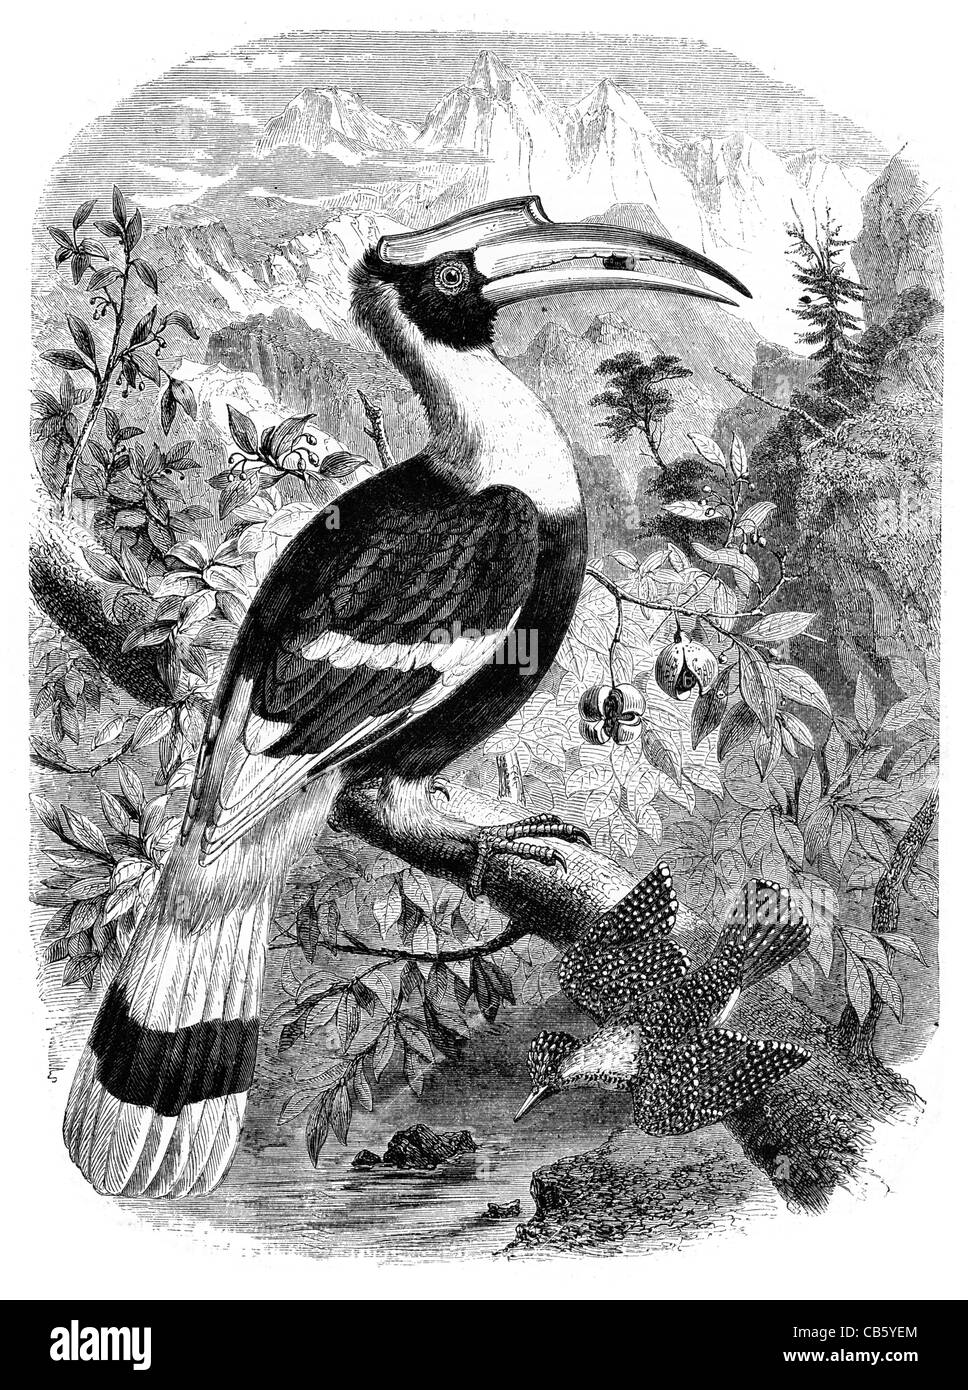 The Crested Toucan and the spotted Fishing Martin - Stock Image